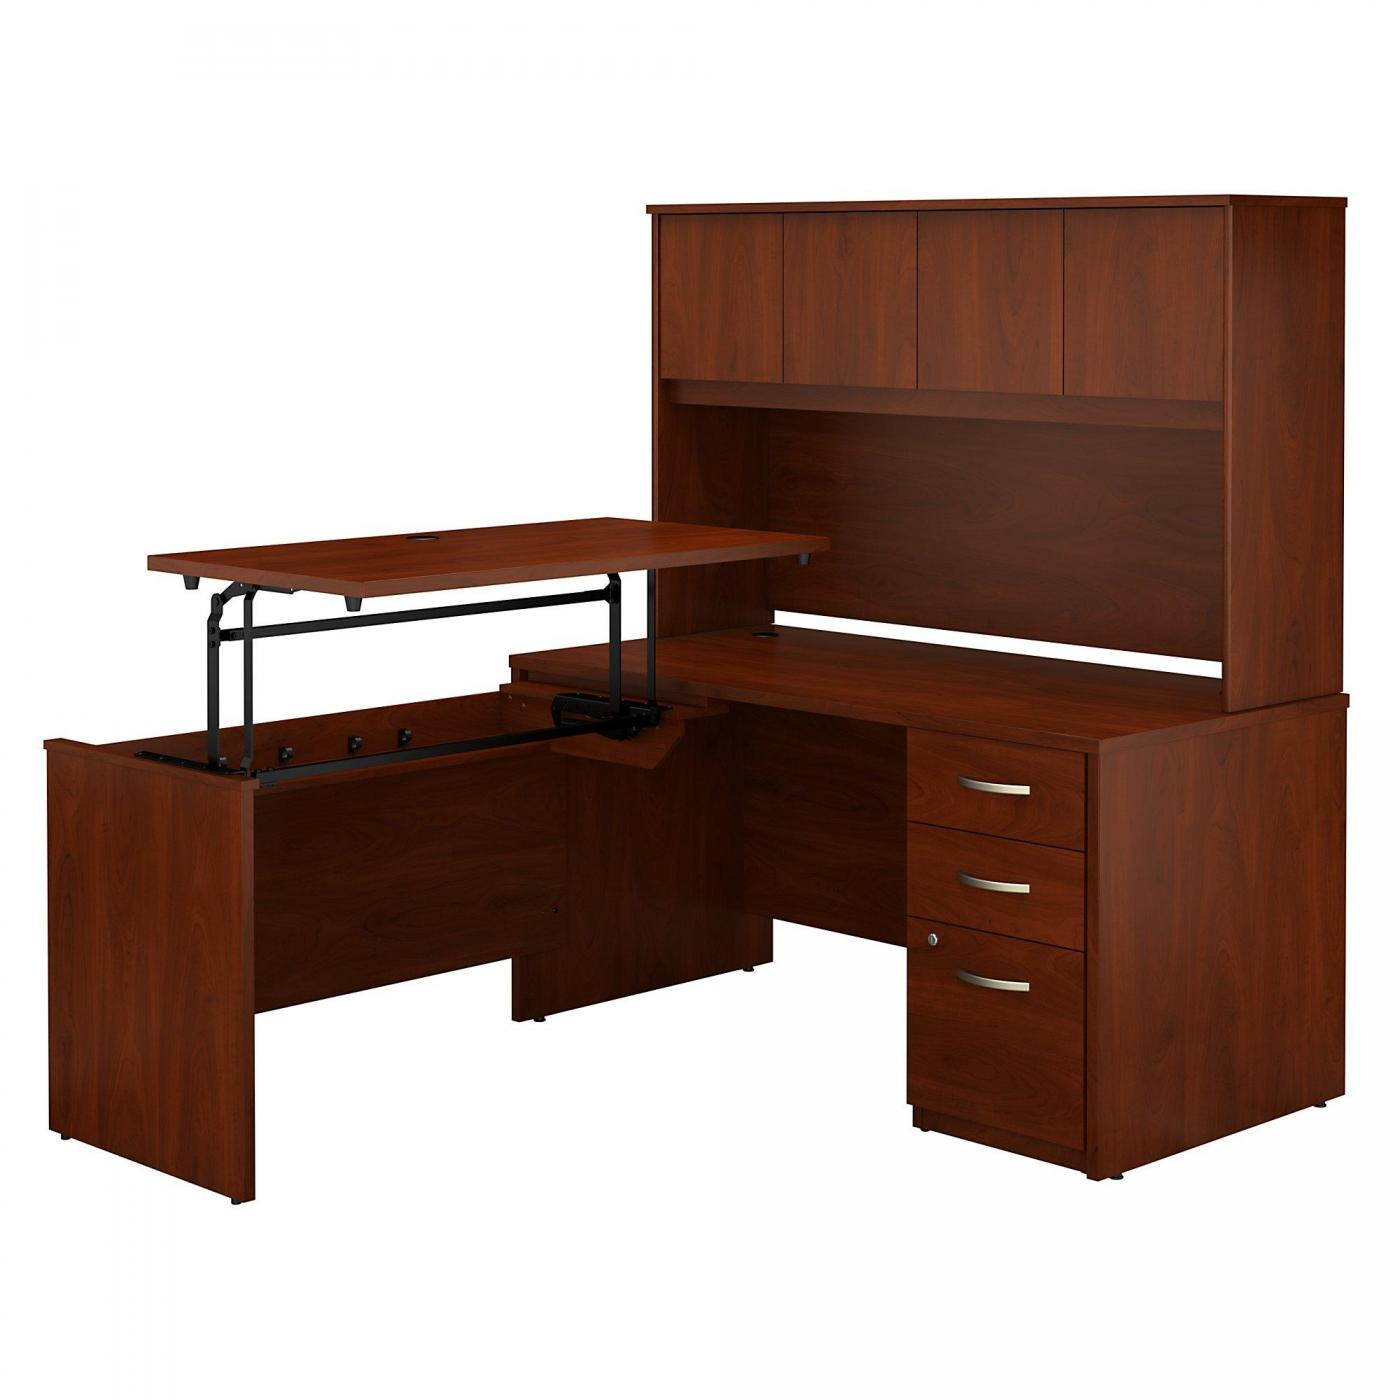 </b></font><b>BUSH BUSINESS FURNITURE SERIES C ELITE 60W X 30D 3 POSITION SIT TO STAND L SHAPED DESK WITH HUTCH AND 3 DRAWER FILE CABINET. FREE SHIPPING. VIDEO:</font> <p>RATING:&#11088;&#11088;&#11088;&#11088;&#11088;</b></font></b>